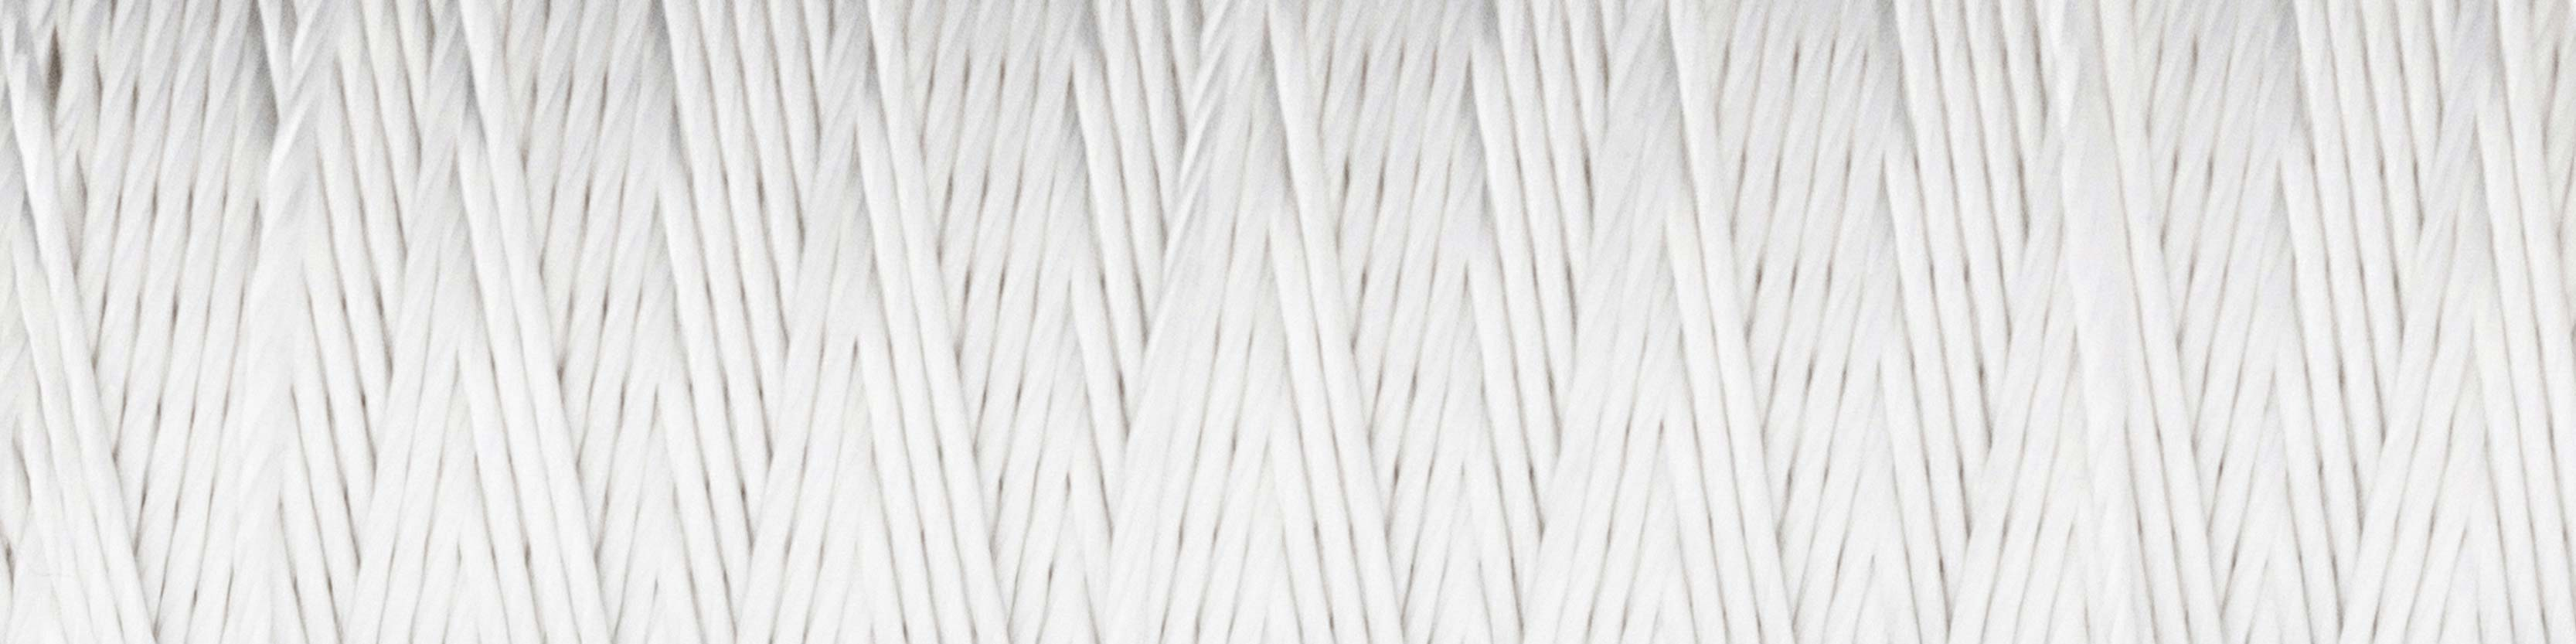 BRILEN Polyester Industrial Yarns NLS High Tenacity Medium Shrinkage PES